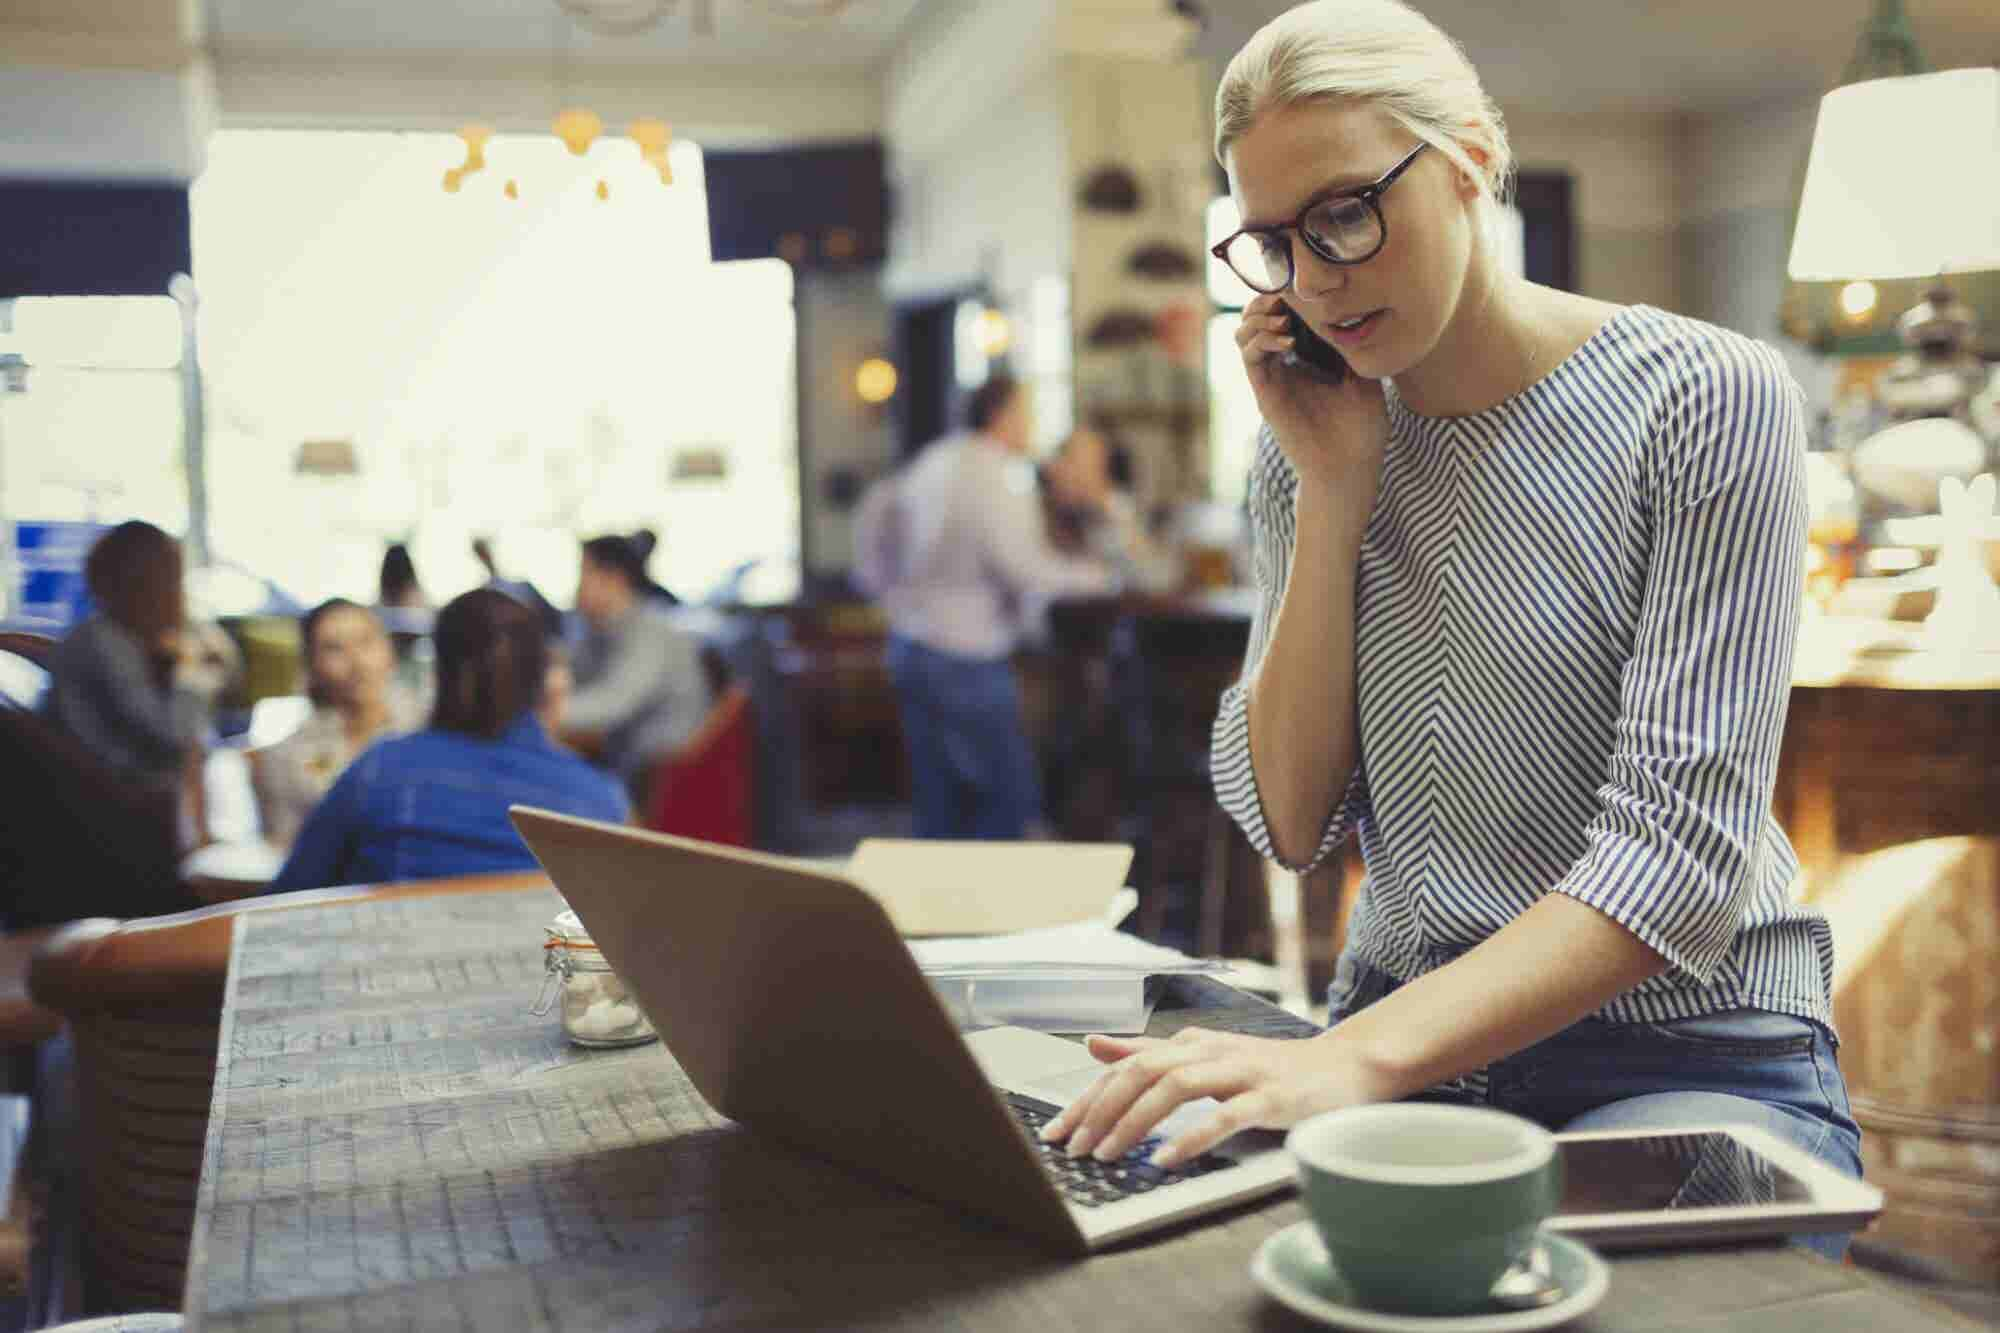 It's Way Past Time to Get Over These 3 Stereotypes About Freelance Workers